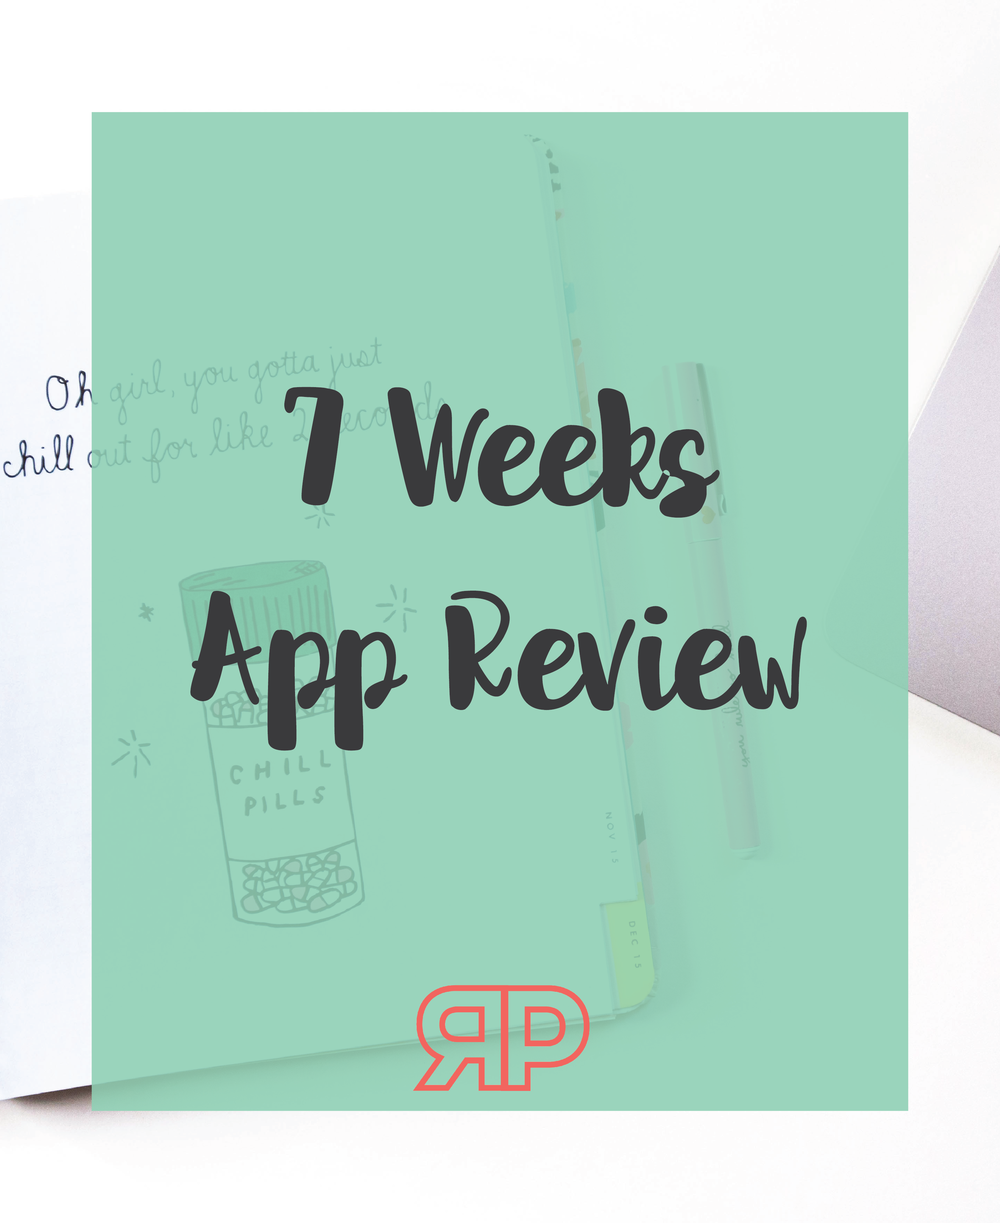 7 Weeks app review | Rourke Planners